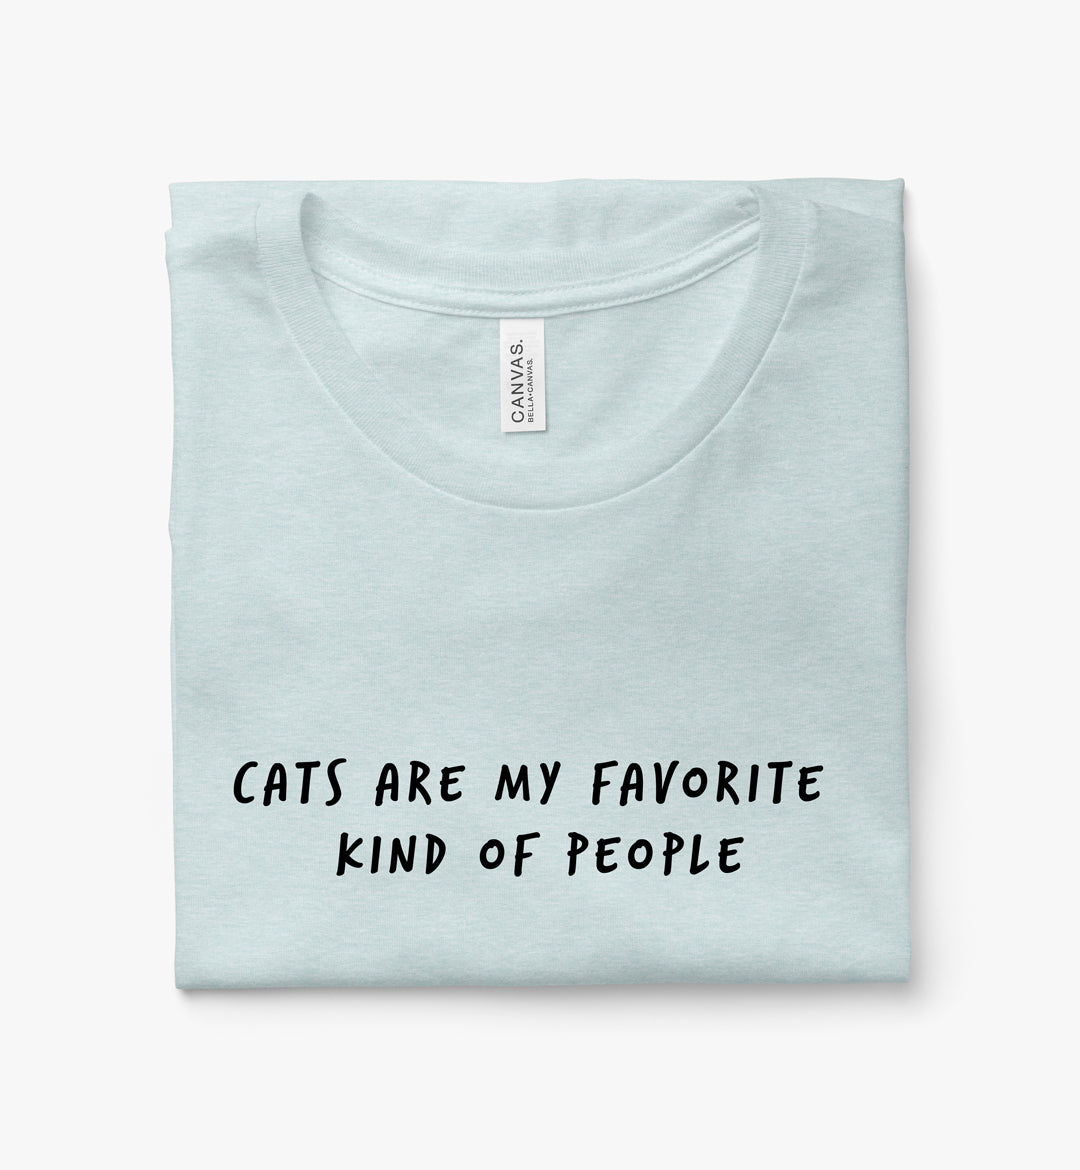 Cats Are My Favorite Kind of People